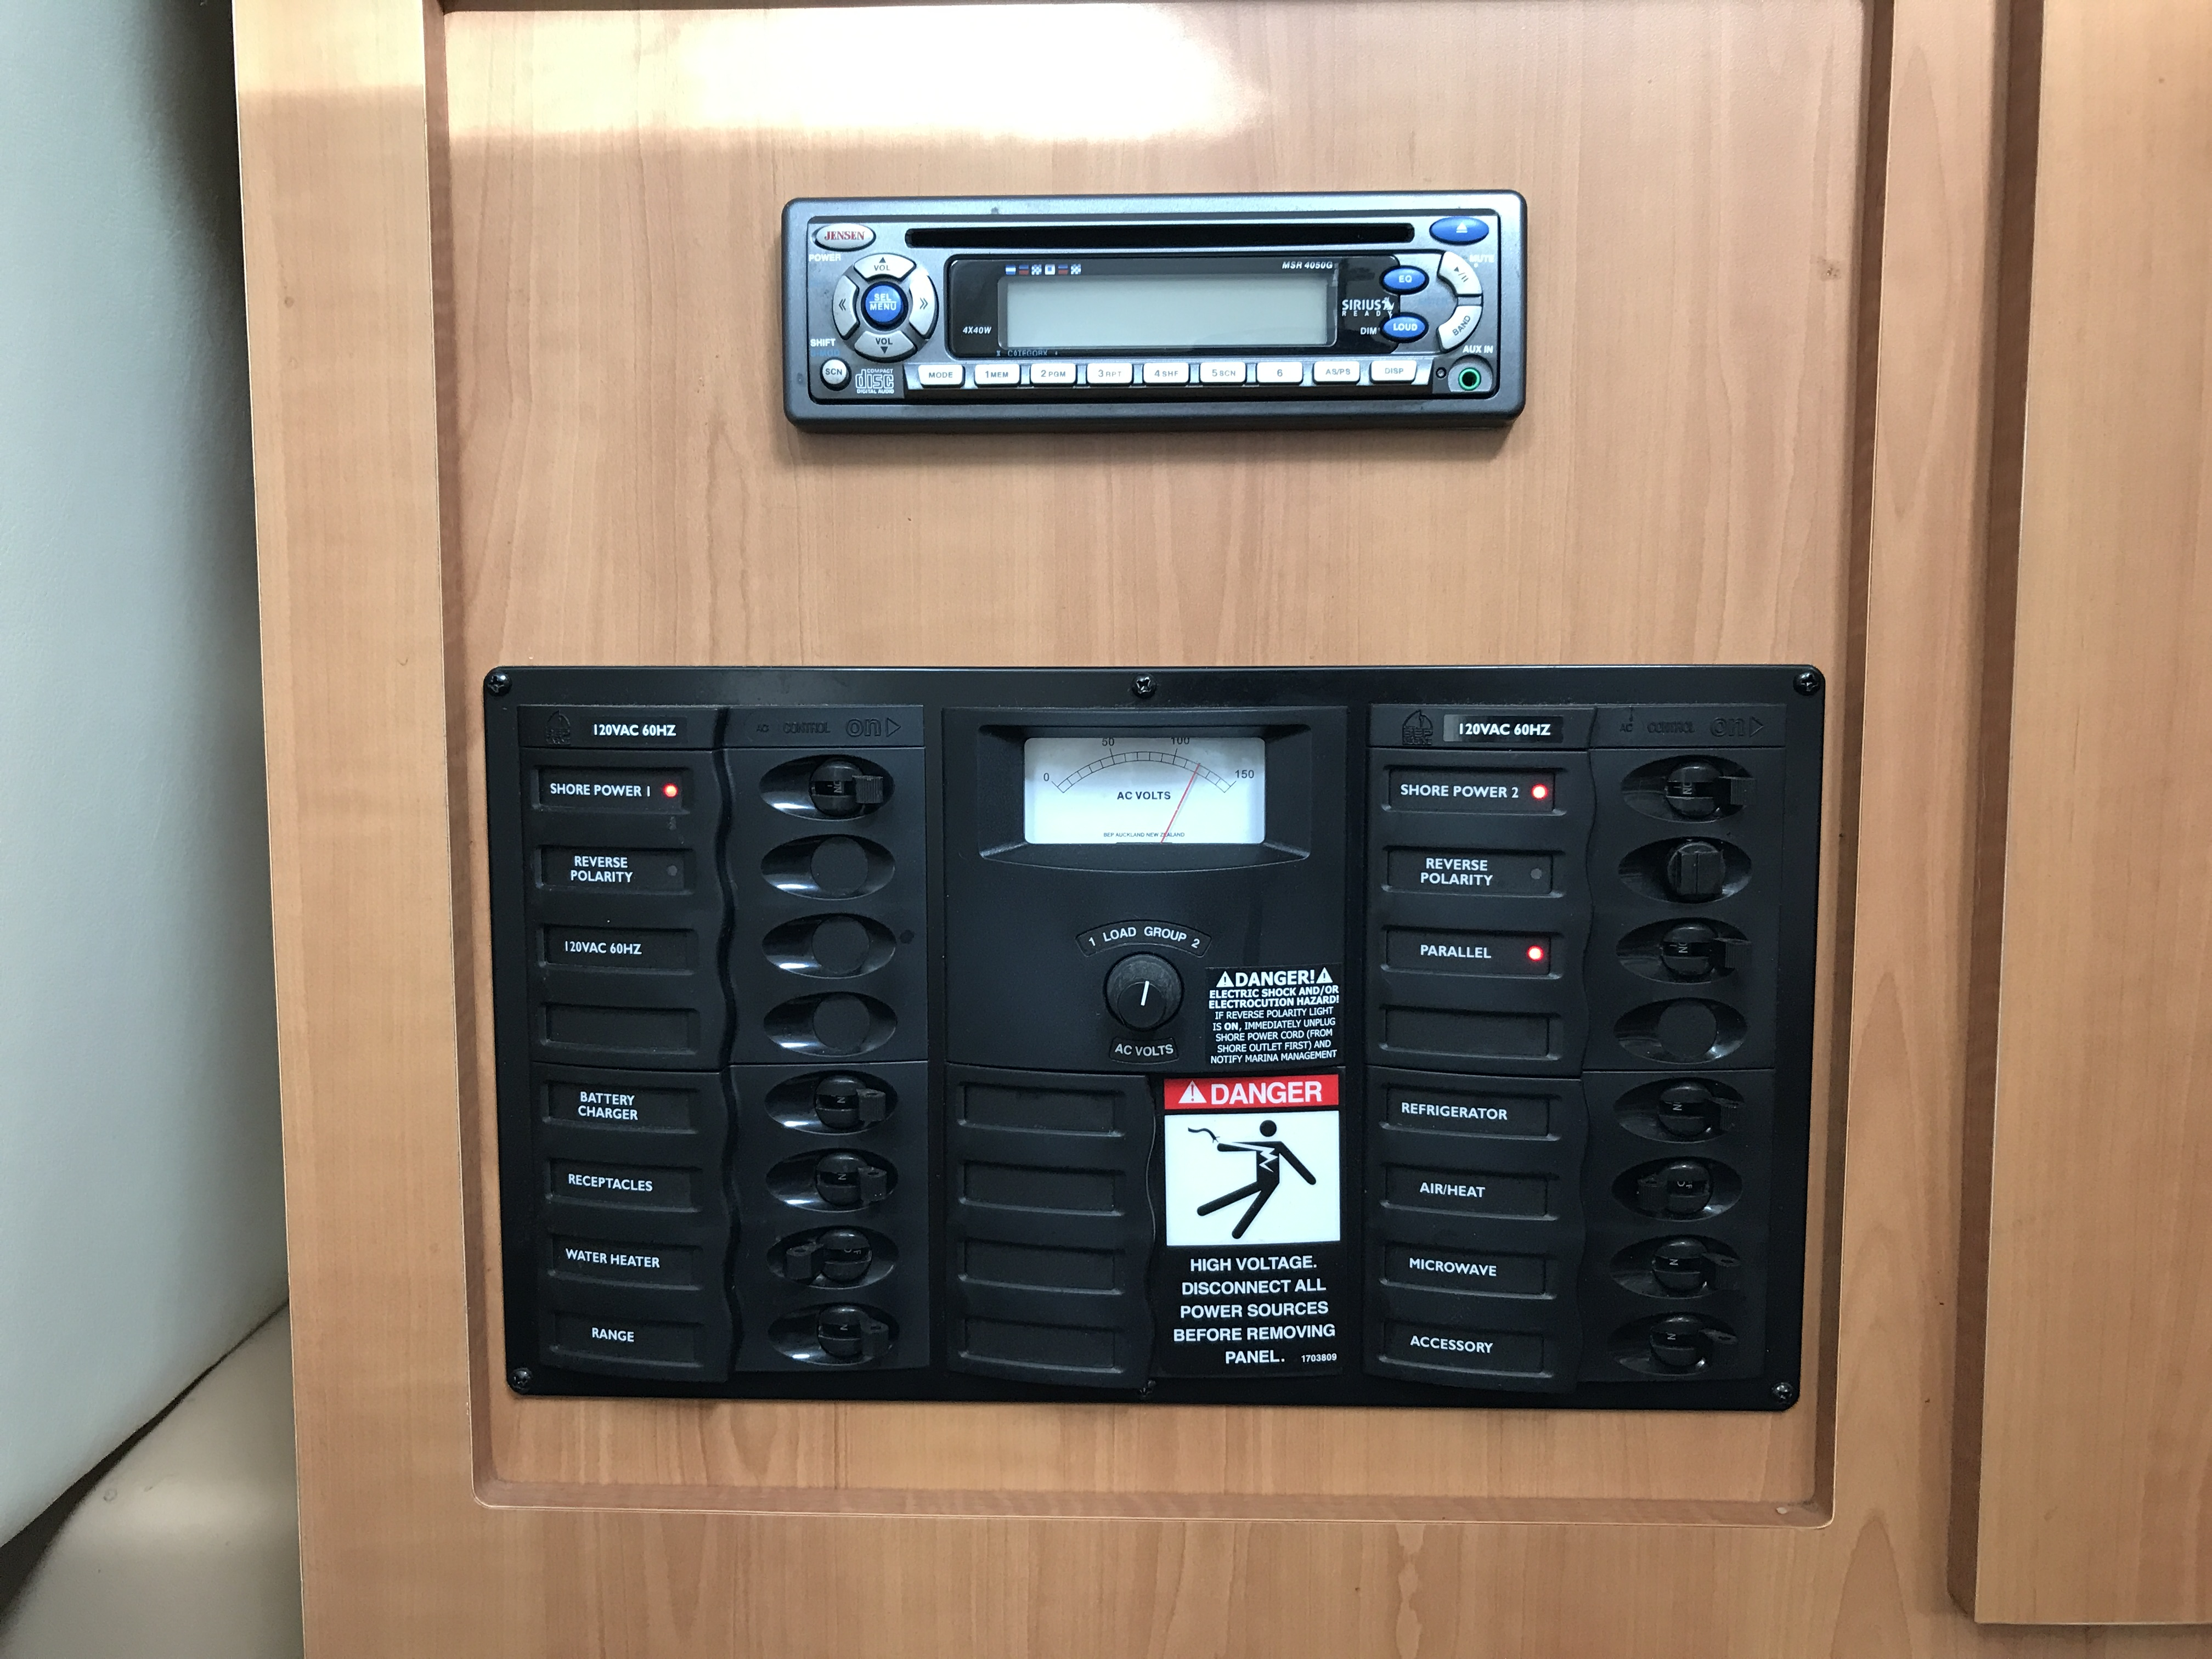 Bayliner Discovery 246 EC - electrical panel and stereo